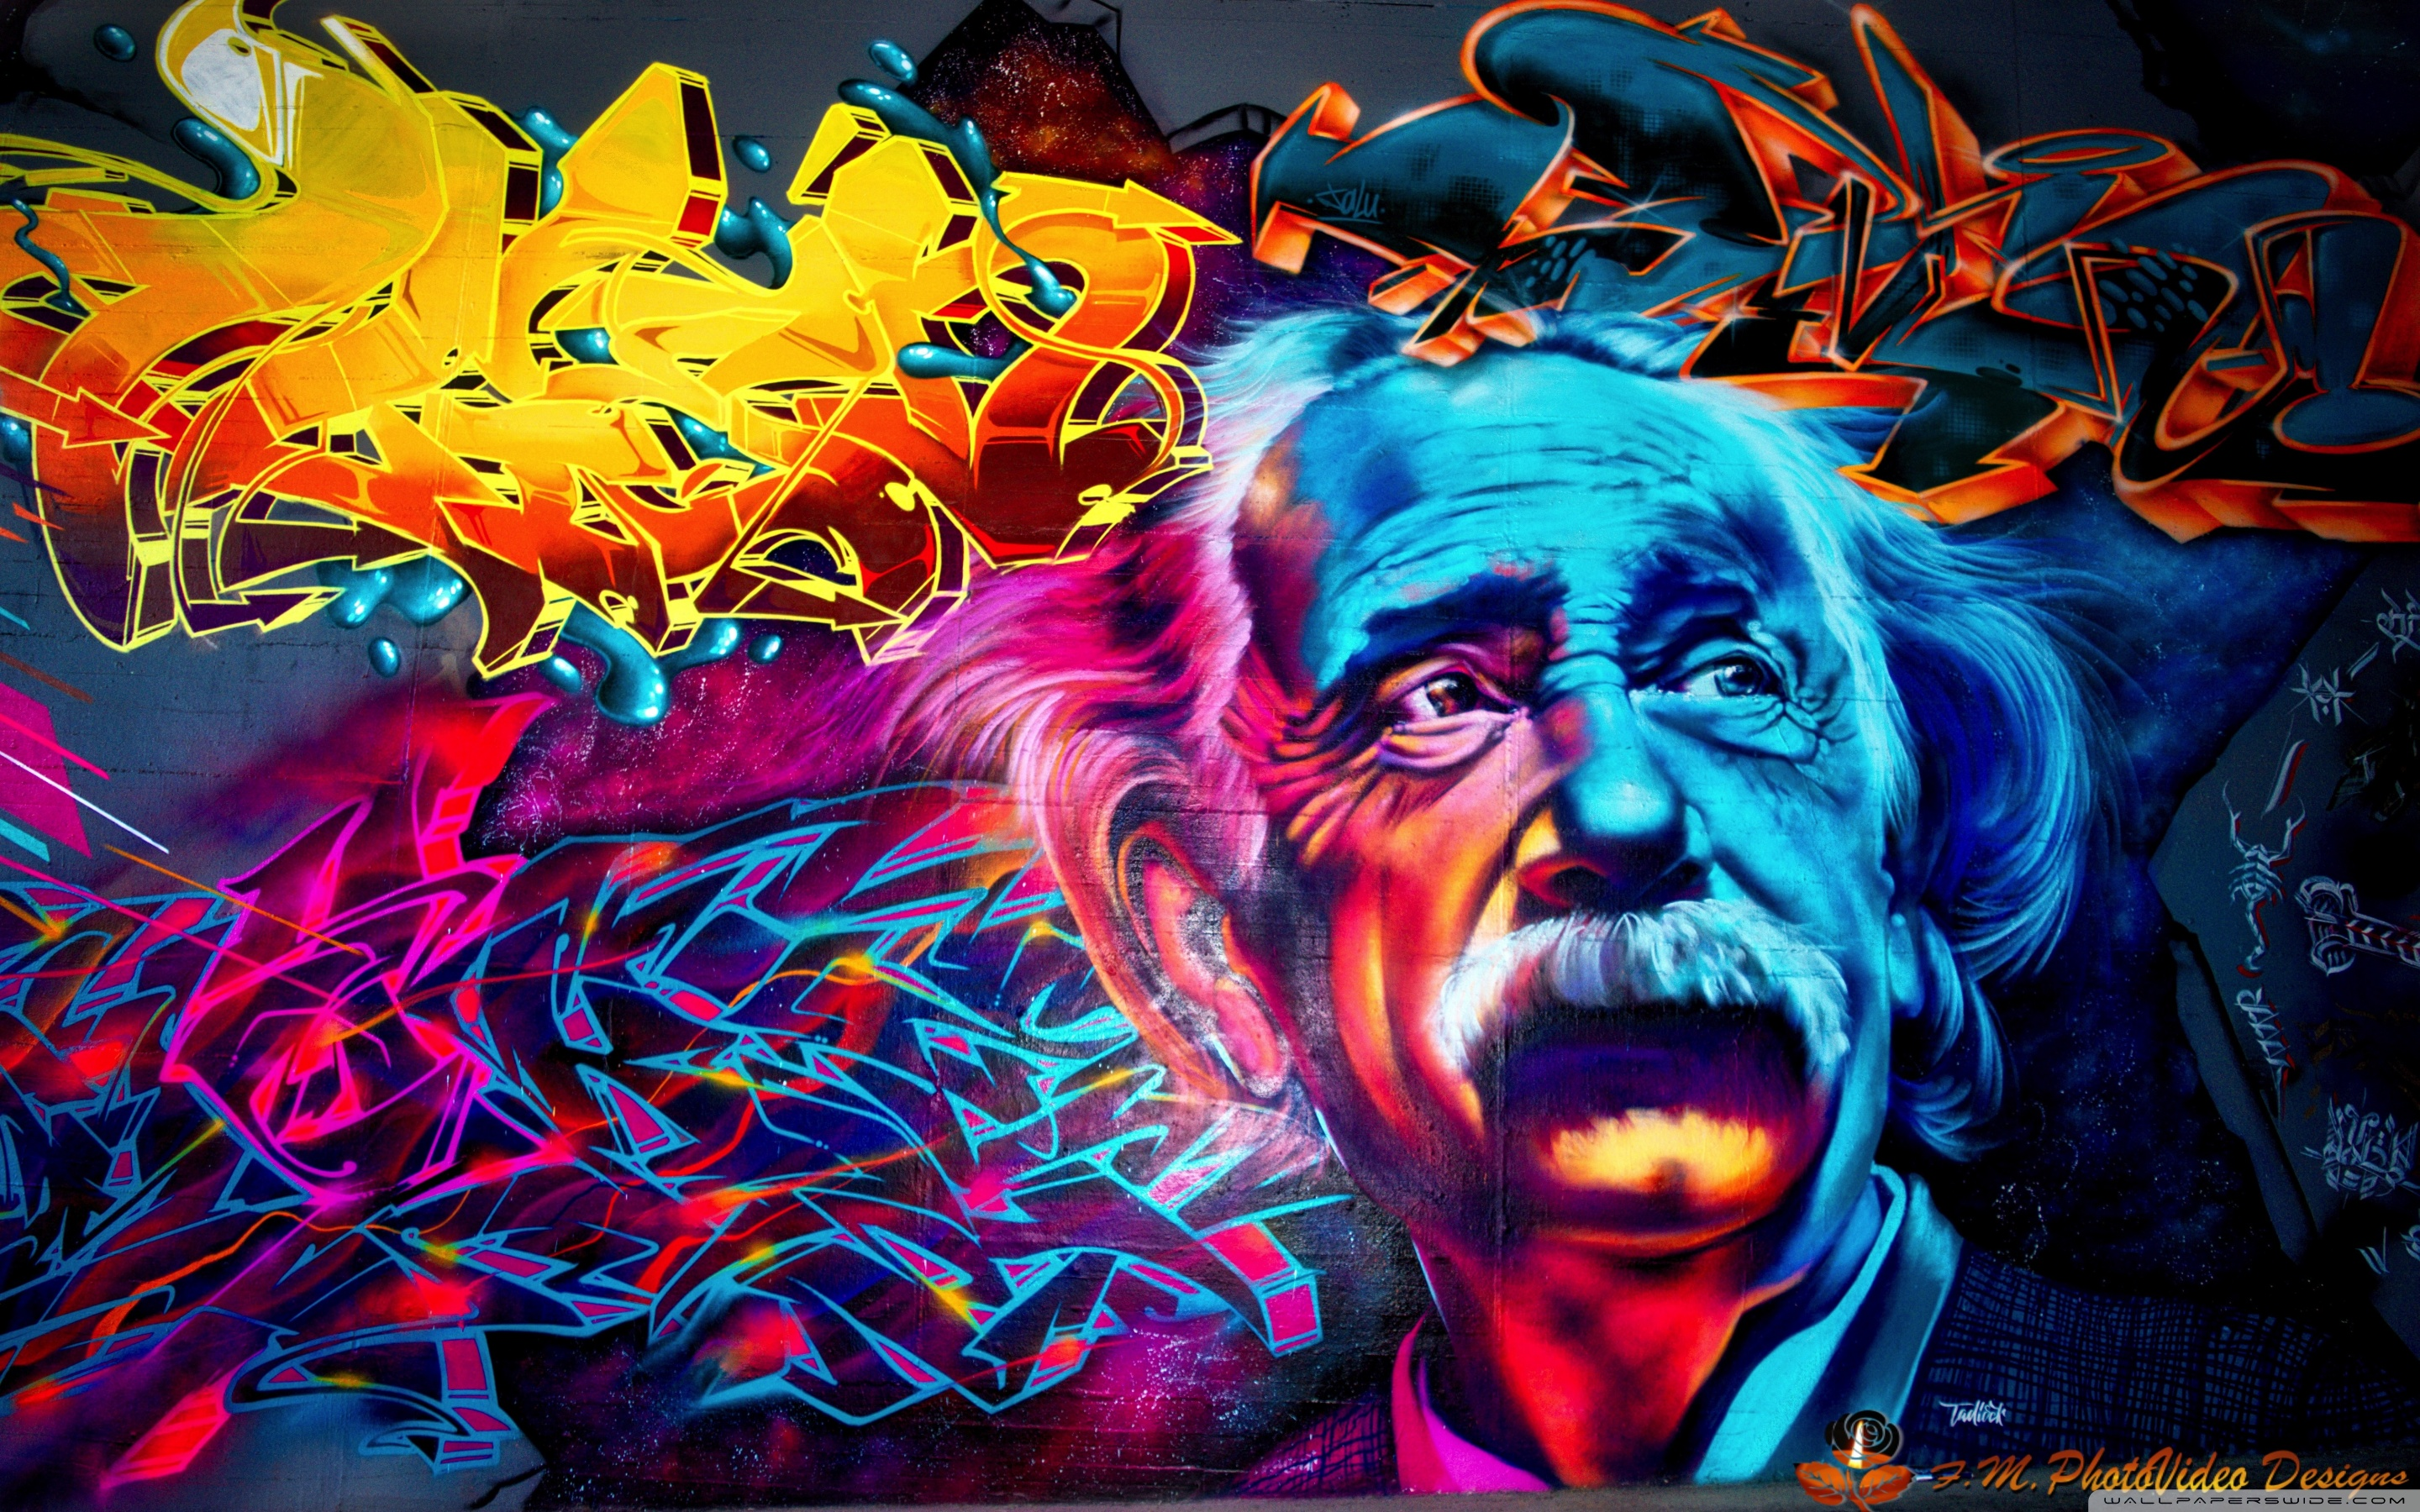 Great Wallpaper Macbook Psychedelic - street_art_5-wallpaper-2880x1800  You Should Have_25917.jpg